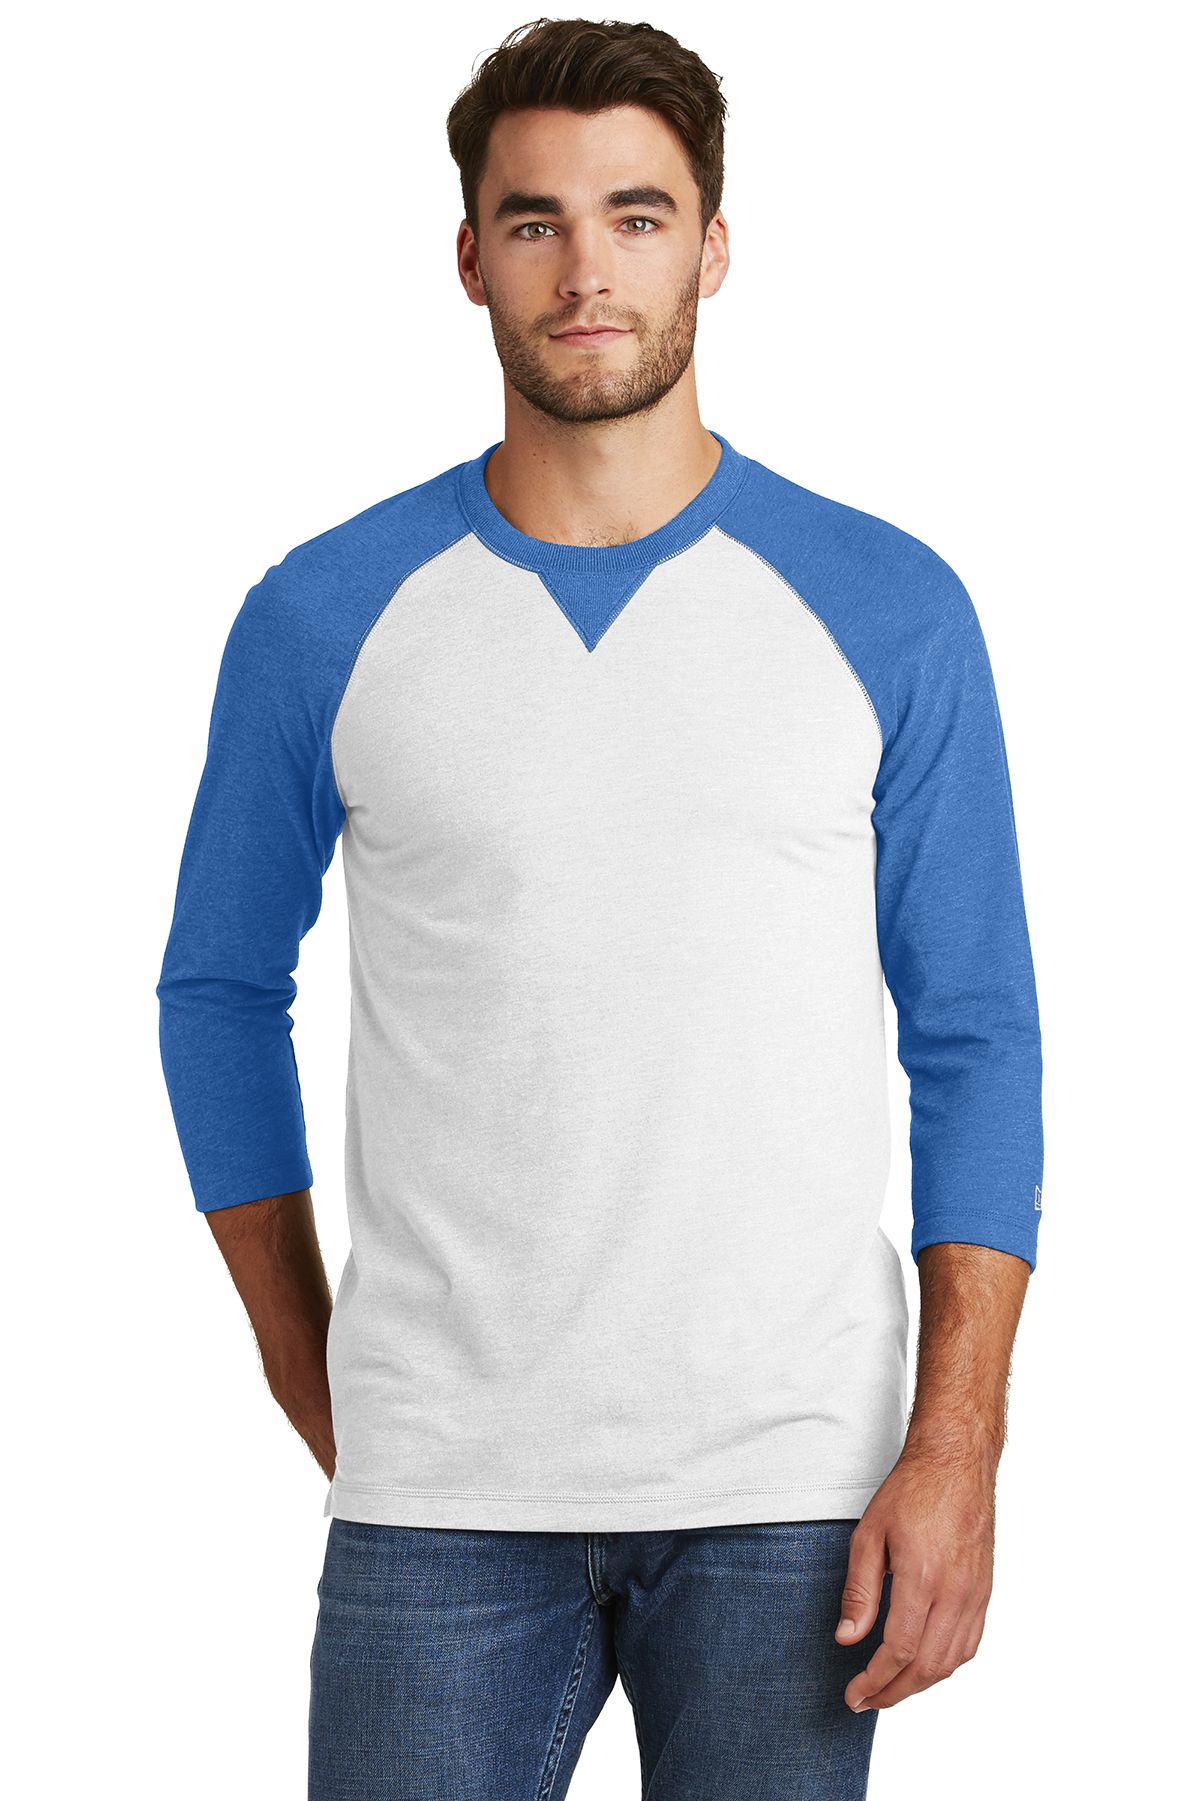 55a3978494fbac New Era® Sueded Cotton Blend 3/4-Sleeve Baseball Raglan Tee ...